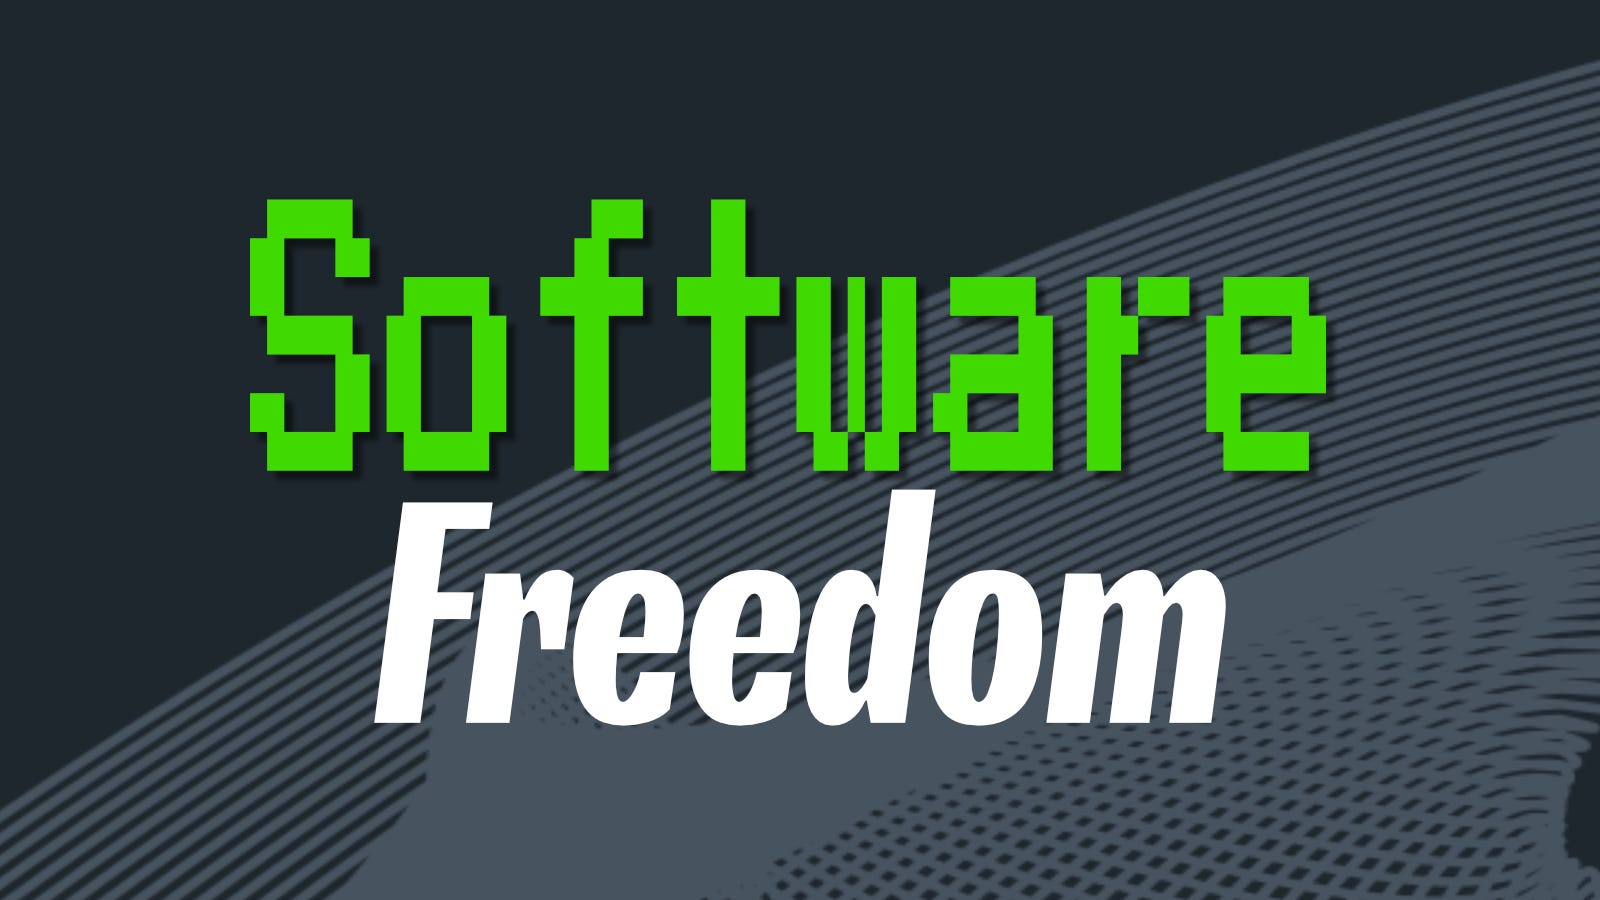 Software Freedom text over gray and blue background